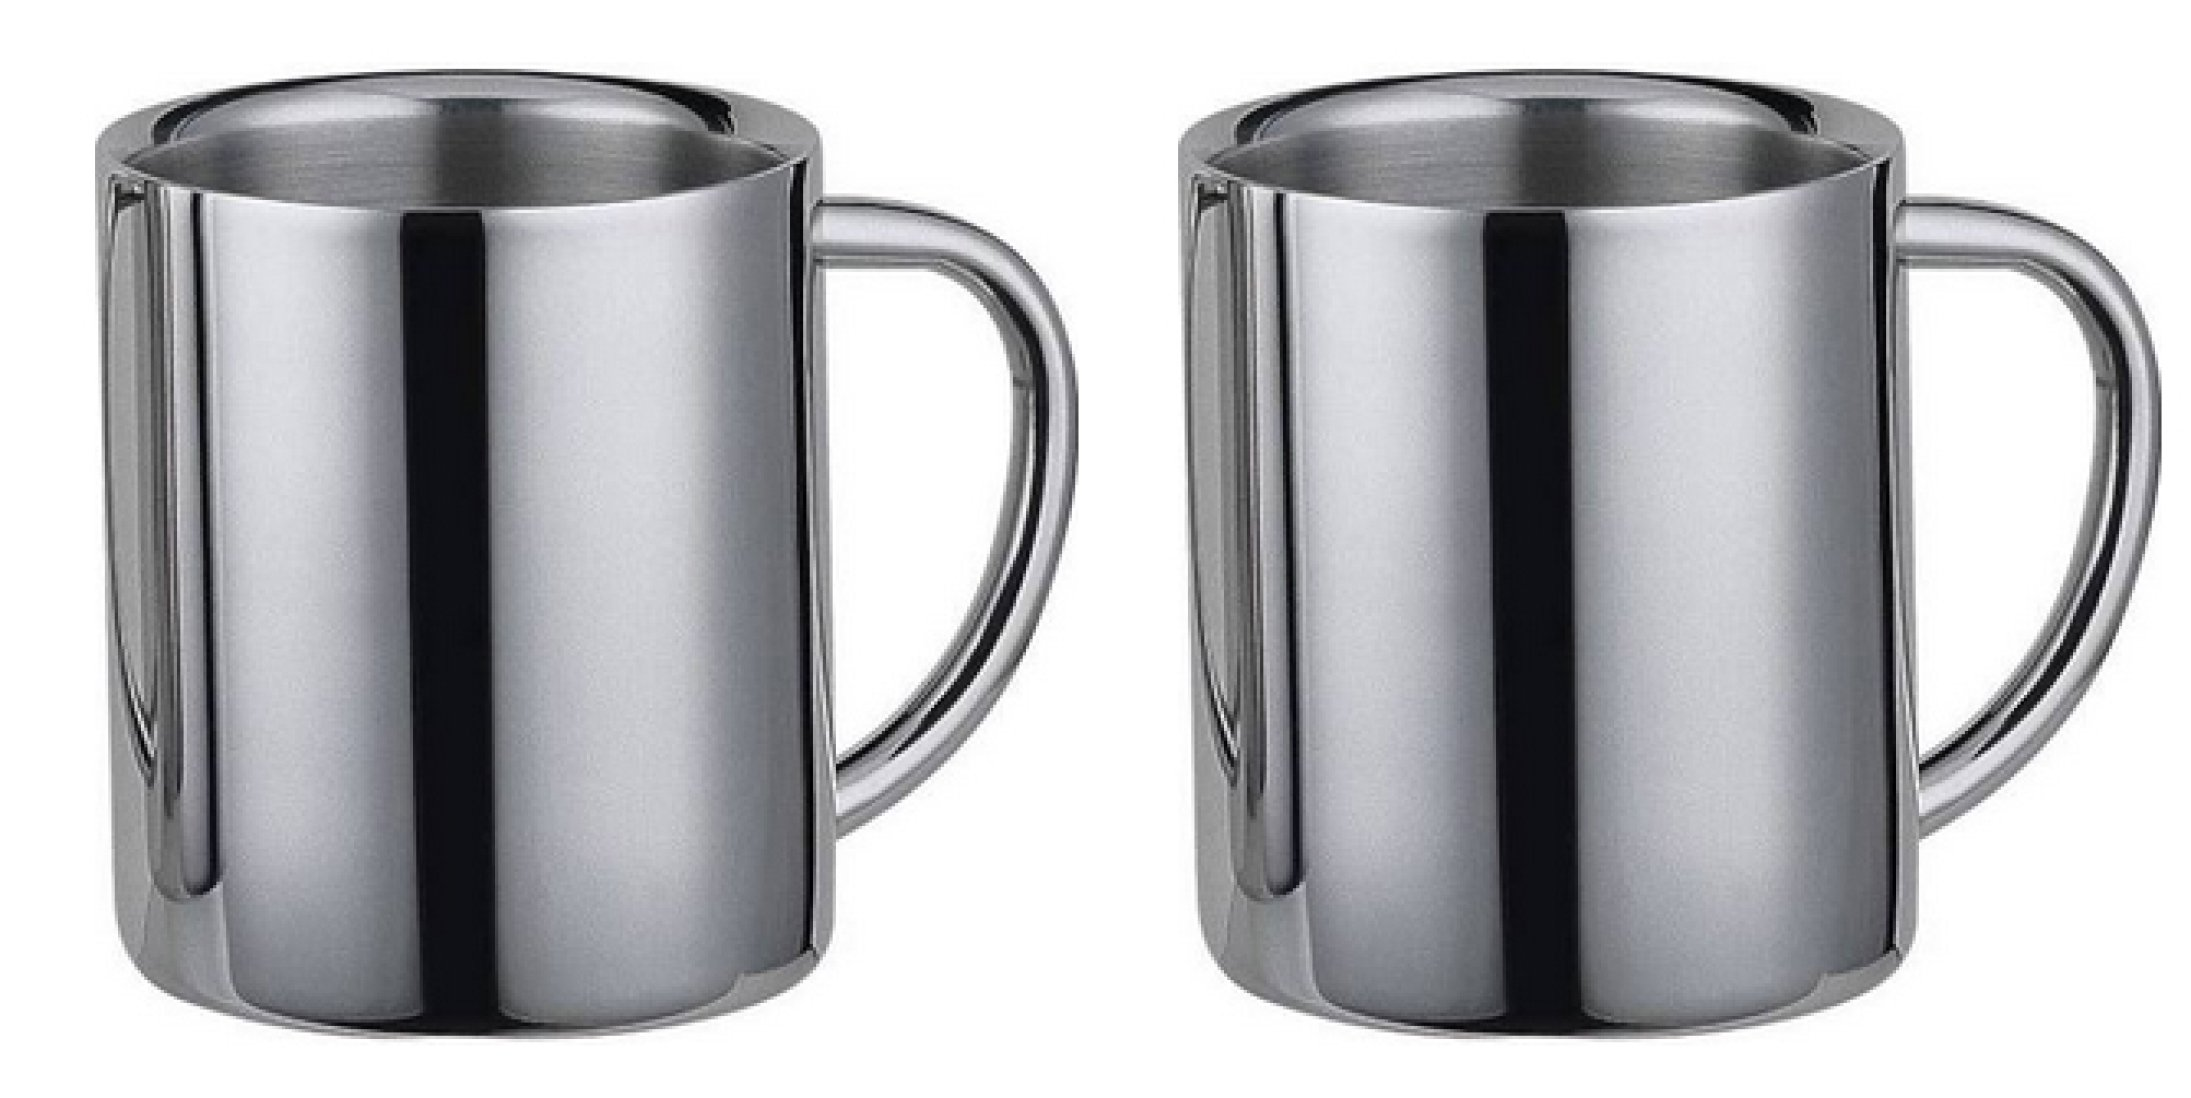 Two Stainless Steel Coffee Mug, Desk Mug, Double Wall Insulated, Stainless Steel Inside and Outside. 14 oz By Space Connection